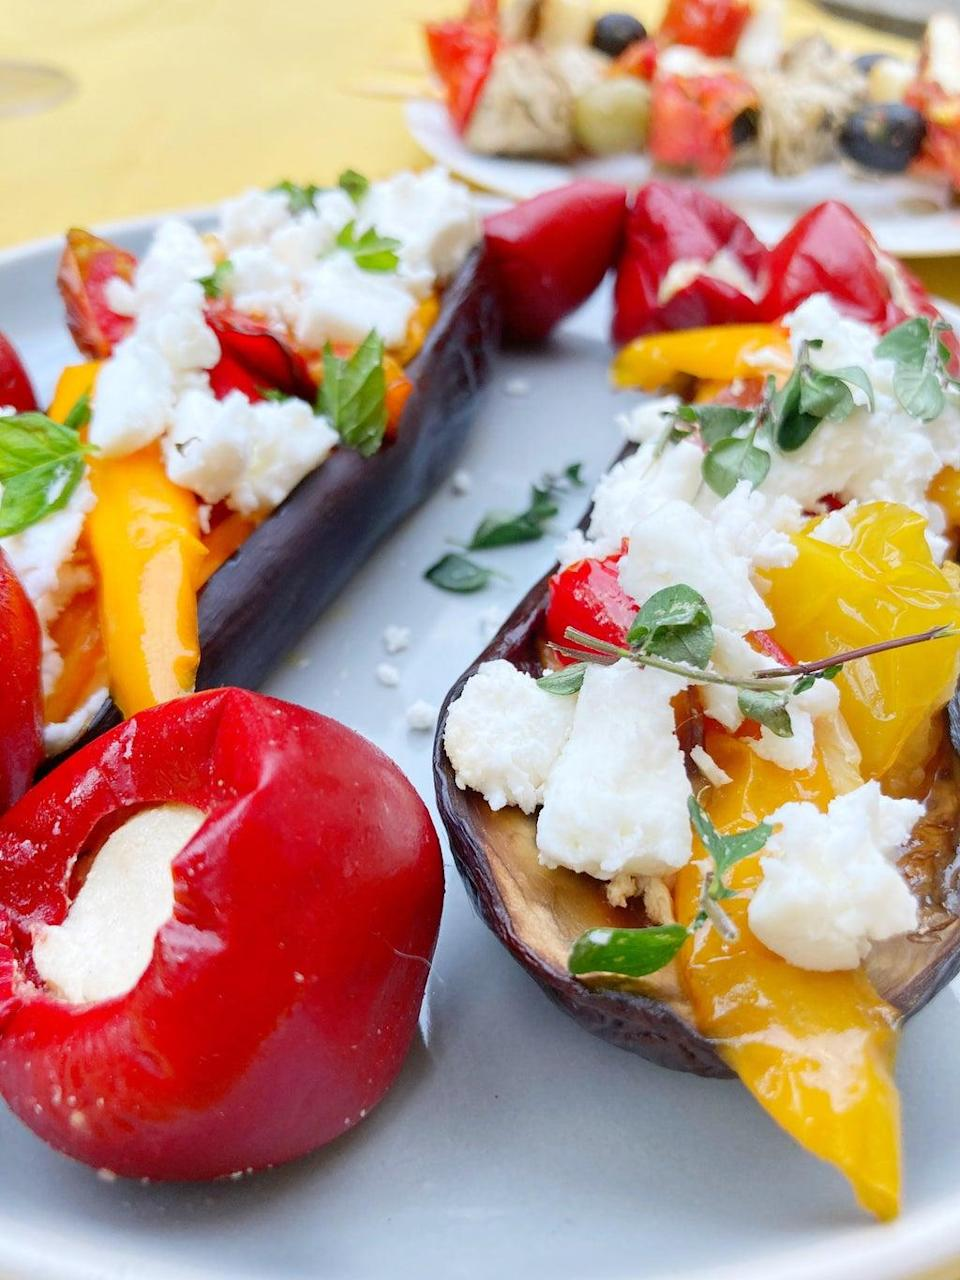 Cheap and healthy, aubergines are the perfect staple for any student meal (Ramona's Kitchen)